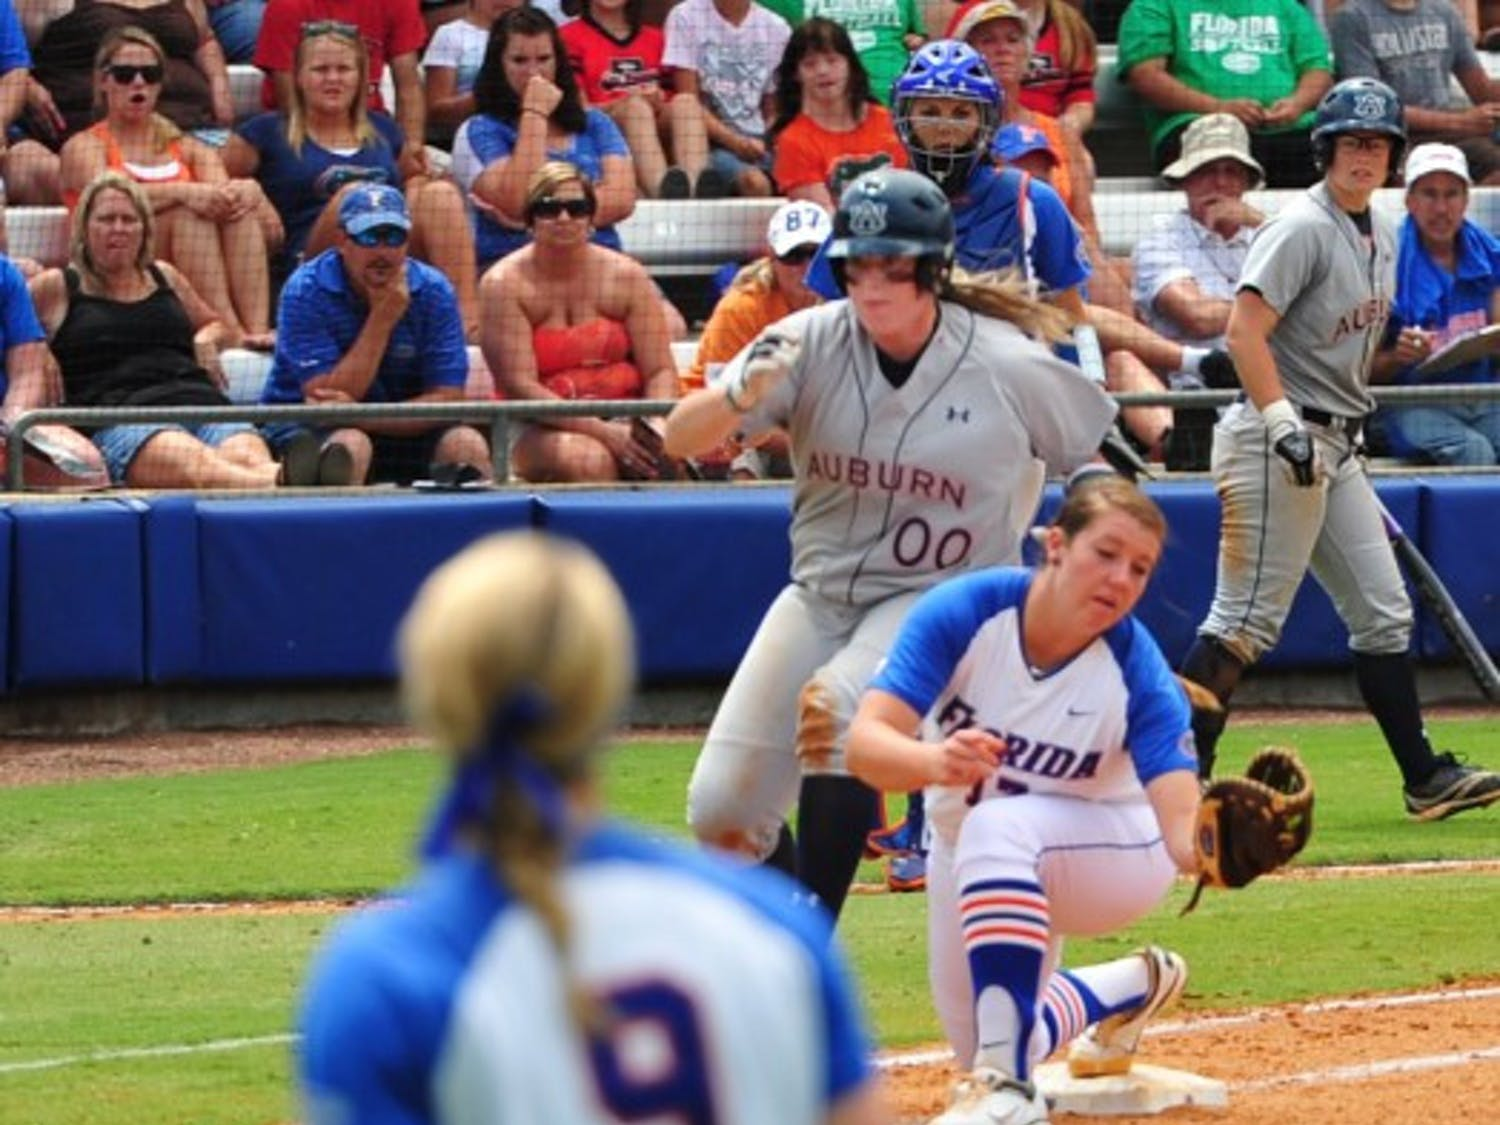 Florida right fielder Kasey Fagan throws out Auburn first baseman Caitlin Jordan during the top of the sixth inning of the Gators' 5-1 win on Sunday.